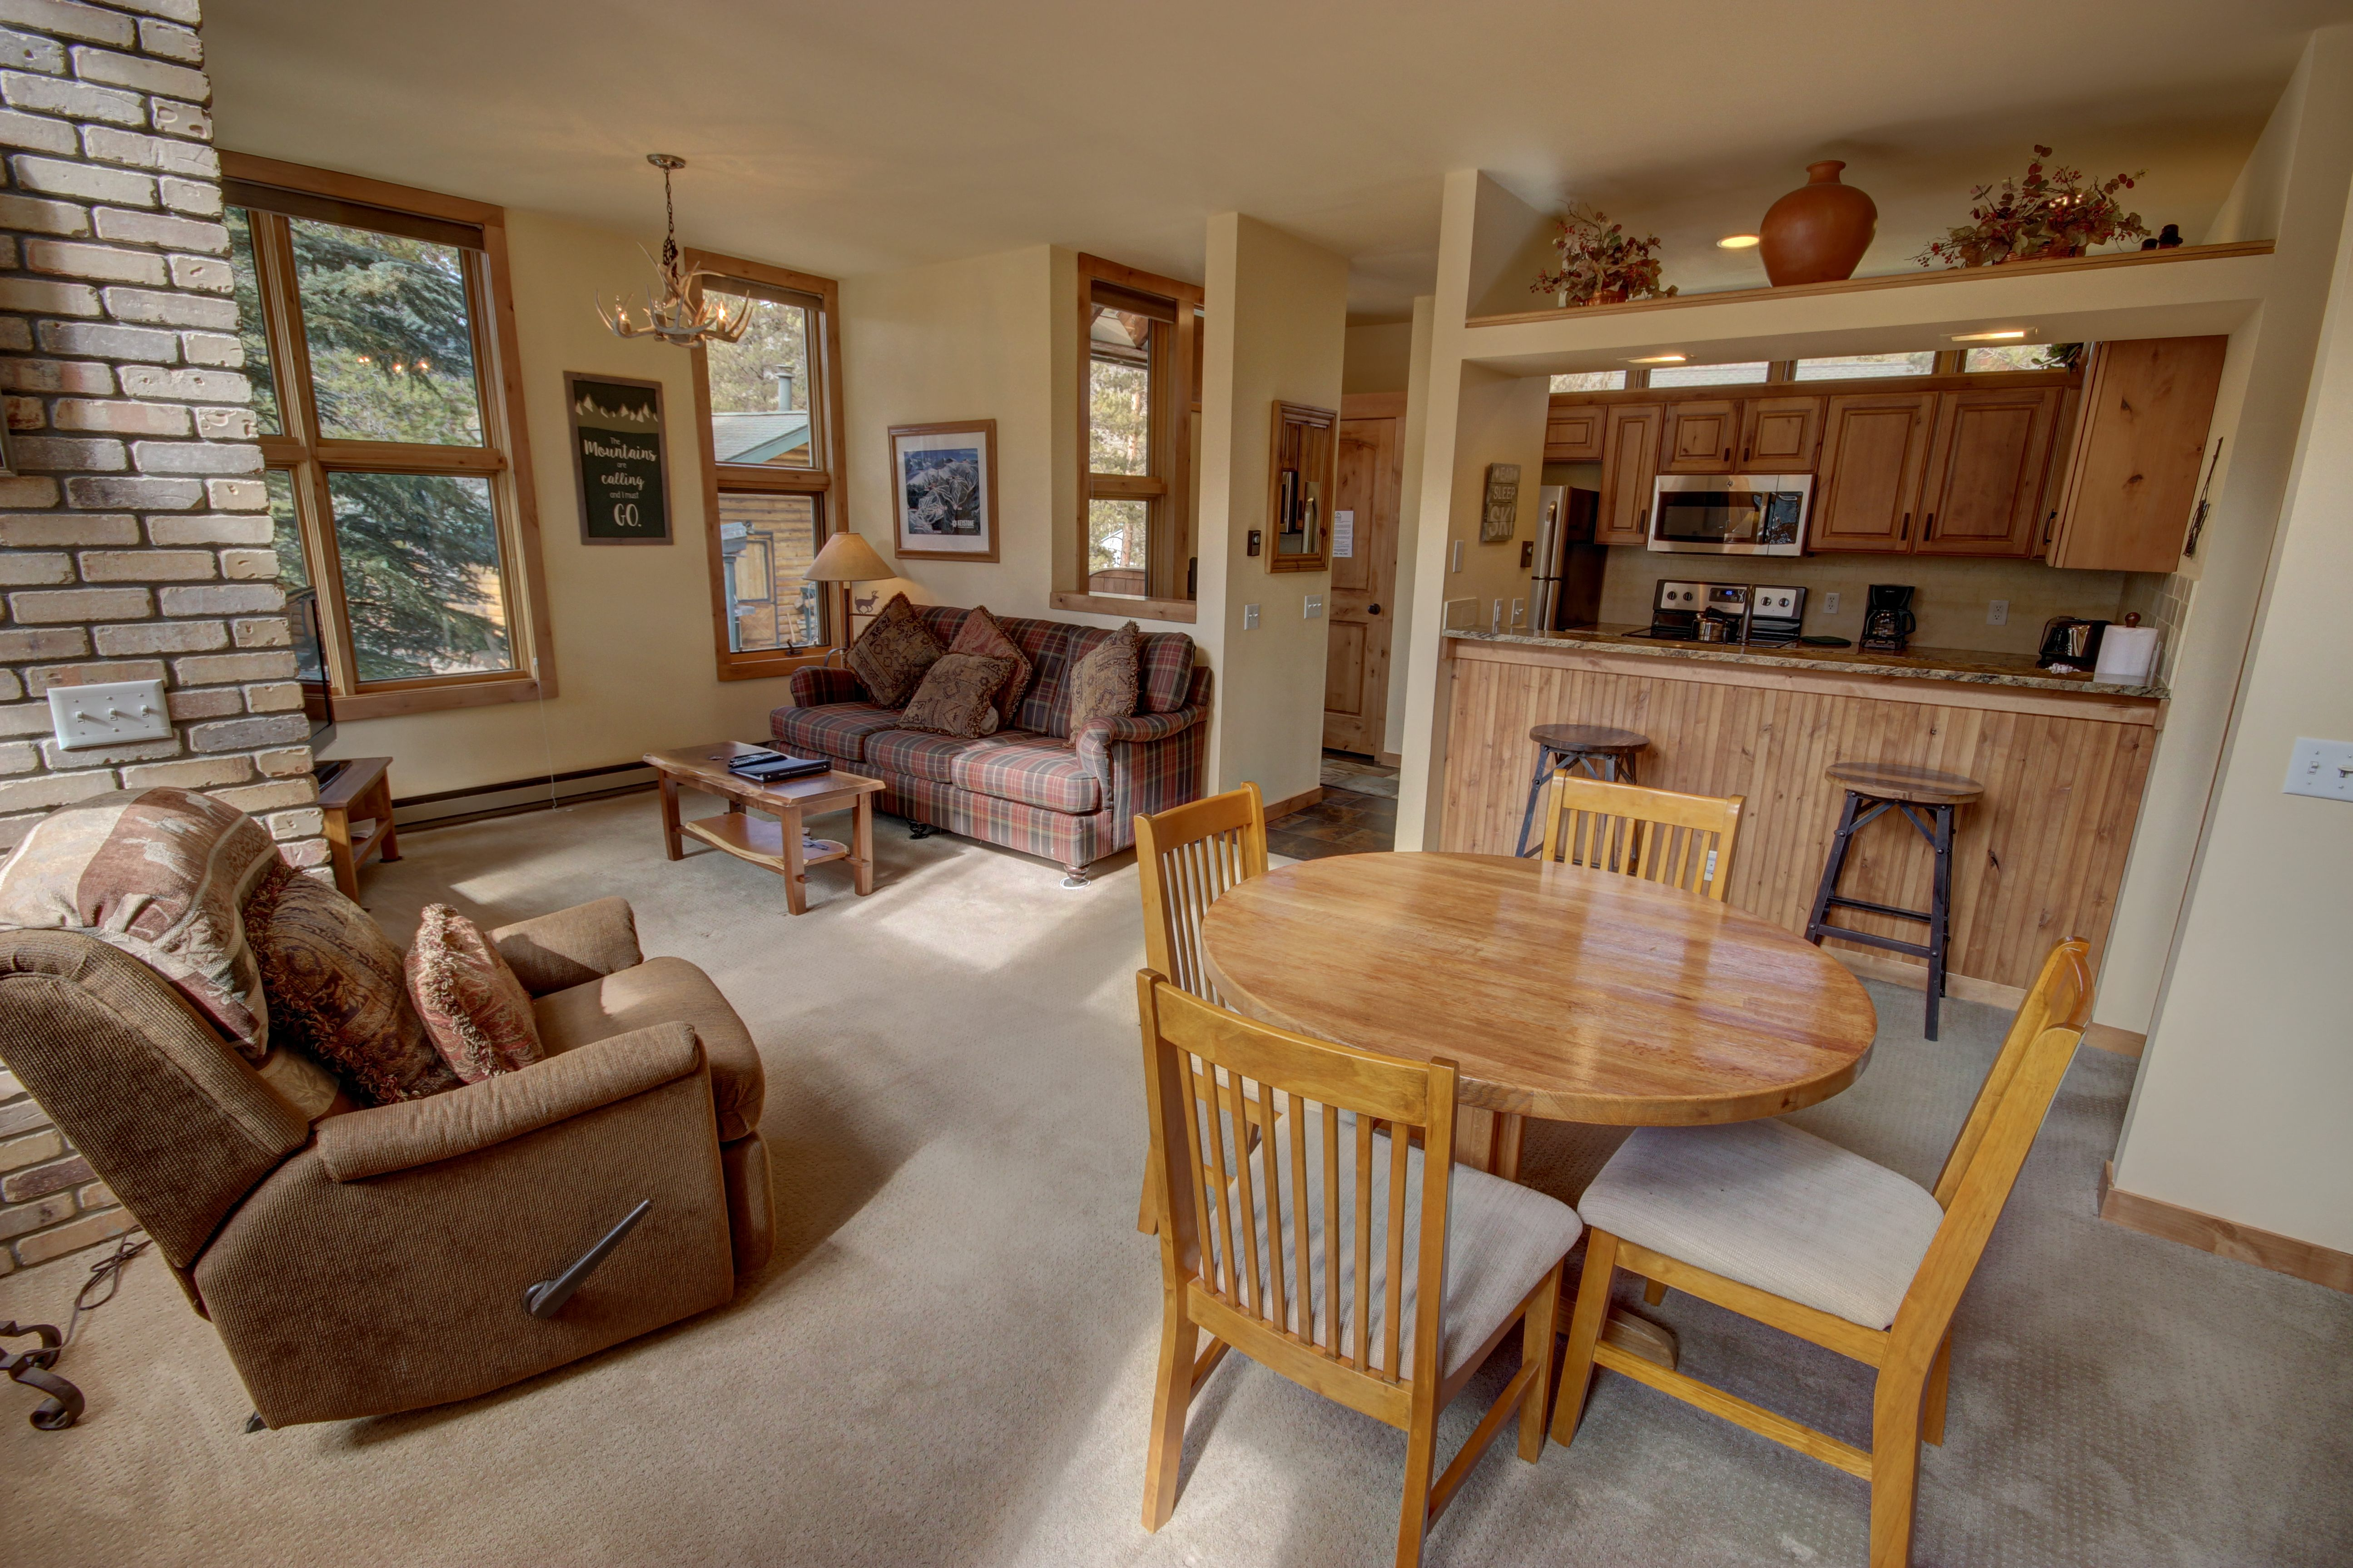 Living room with wooden dining table